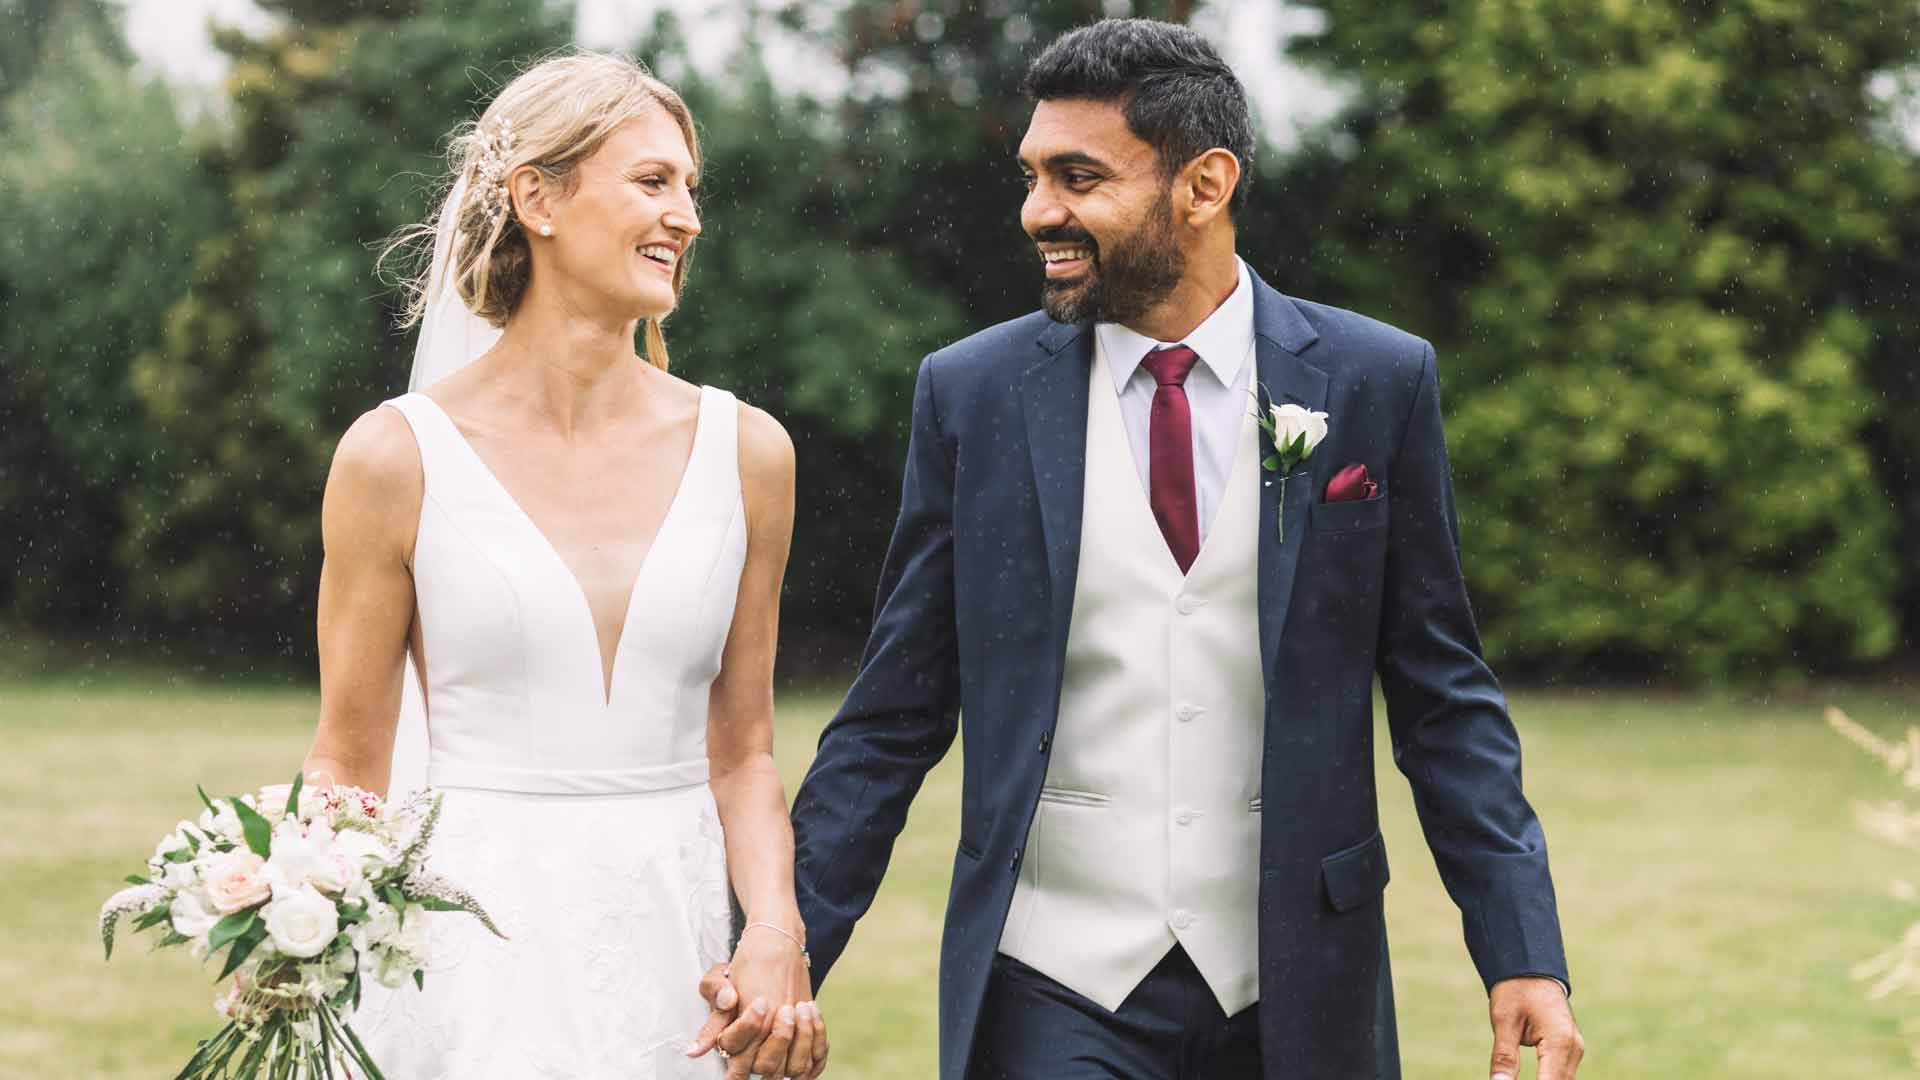 <a href='/en/players/divij-sharan/sd46/overview'>Divij Sharan</a> and Samantha Murray wedding